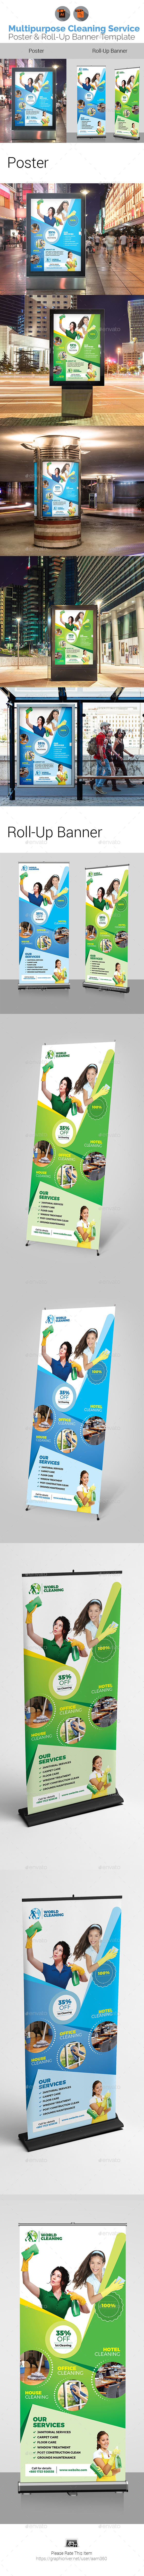 Cleaning Services Signage Bundle - Signage Print Templates